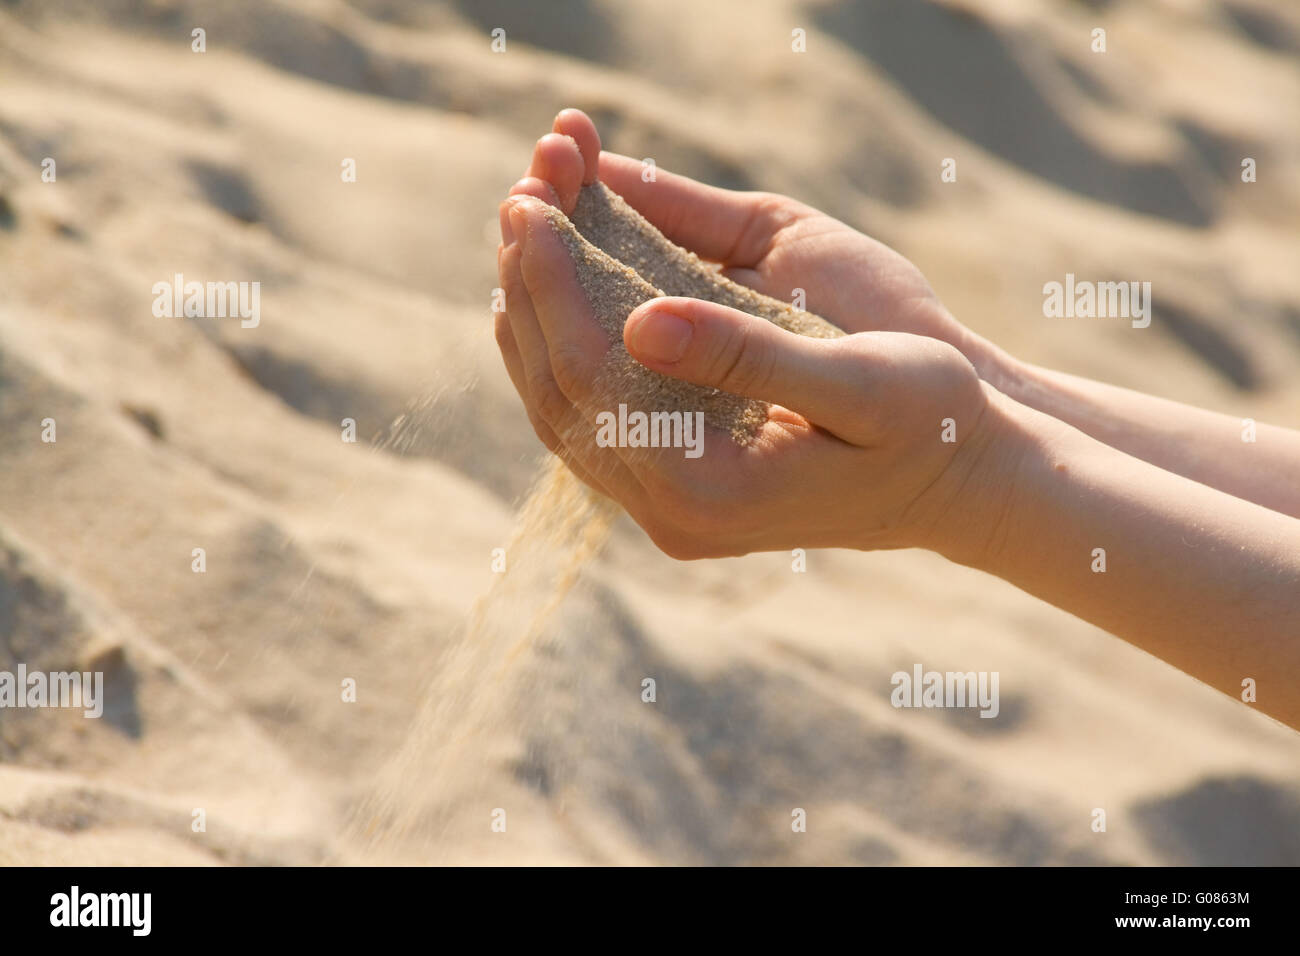 Sands pour through fingers. temporariness of life Stock Photo